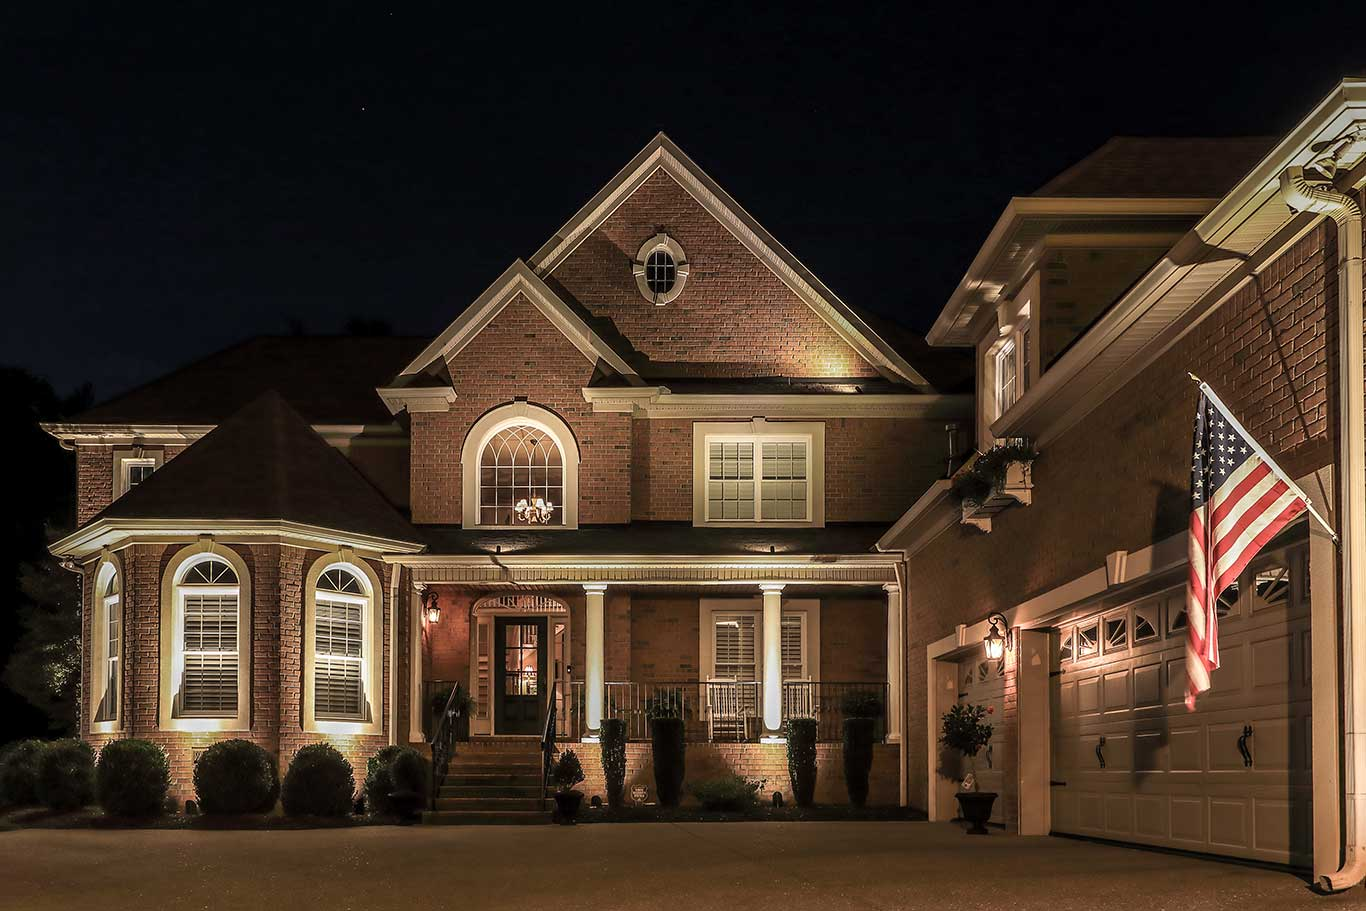 lighting-architectural-franklin-tn